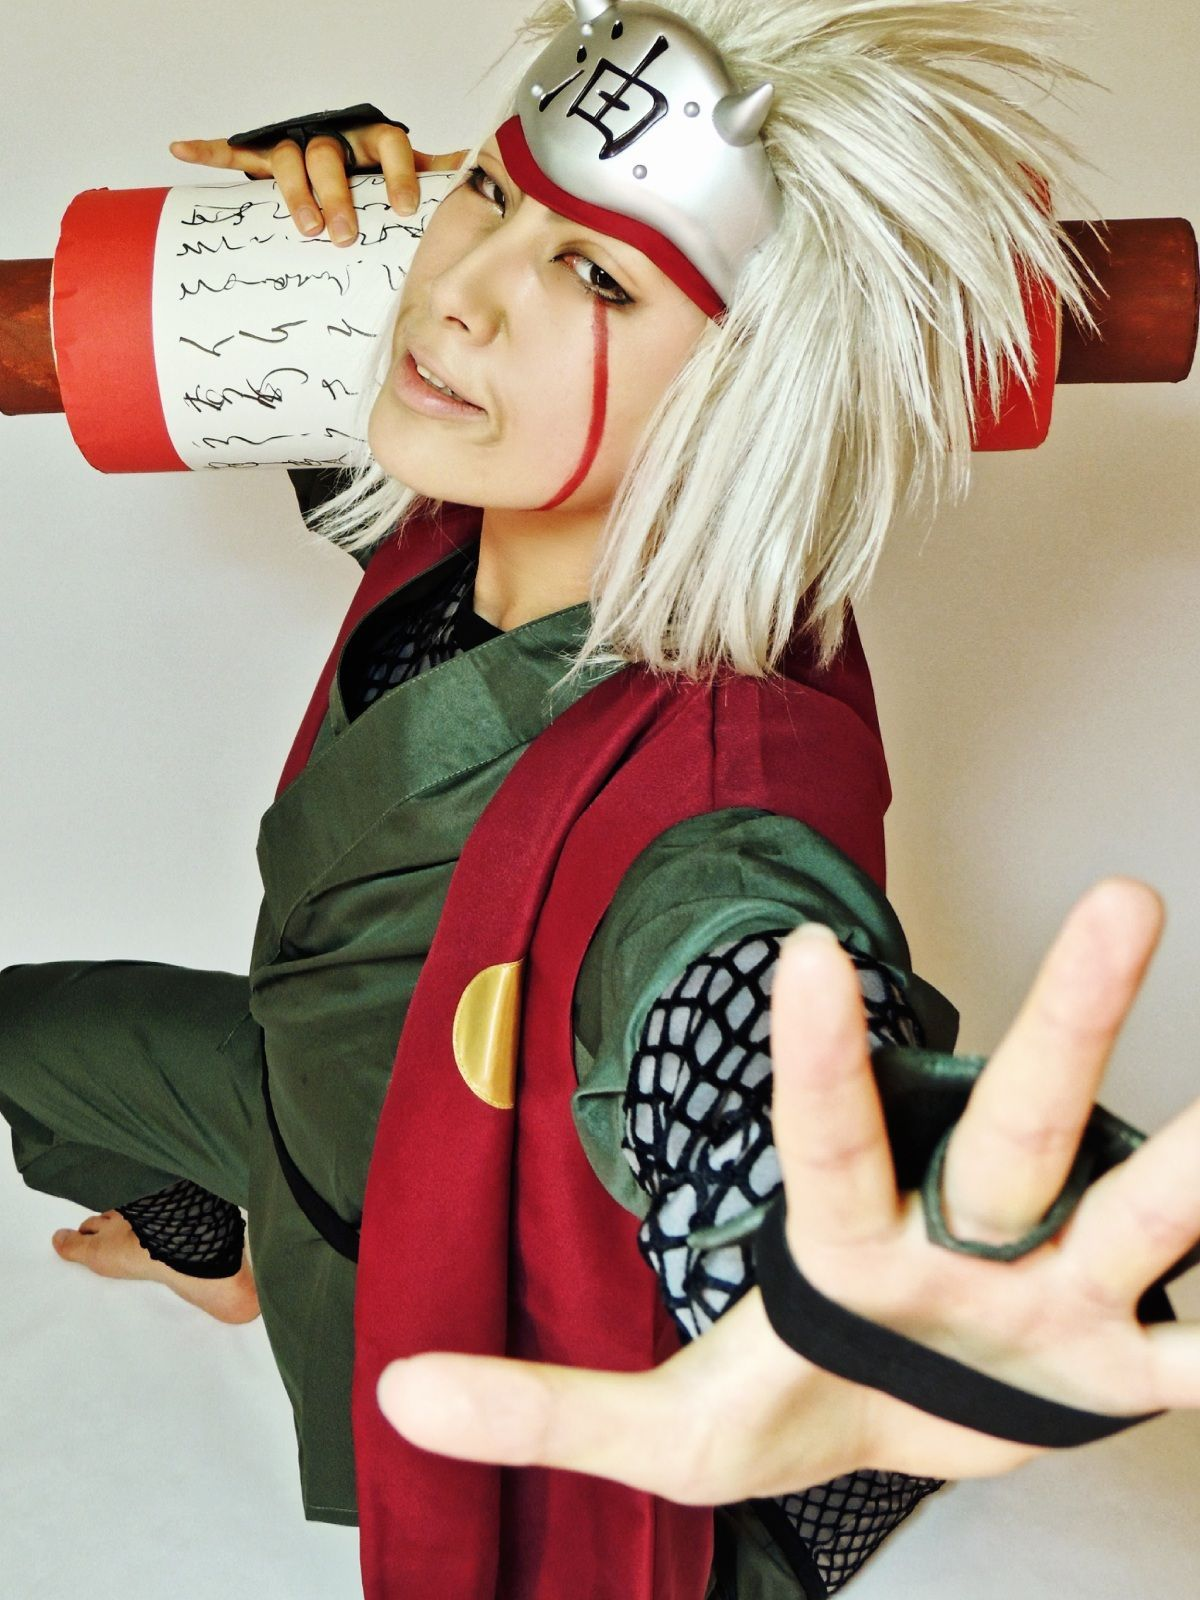 Photo of 10 Interesting Facts About Jiraiya That You Should Know